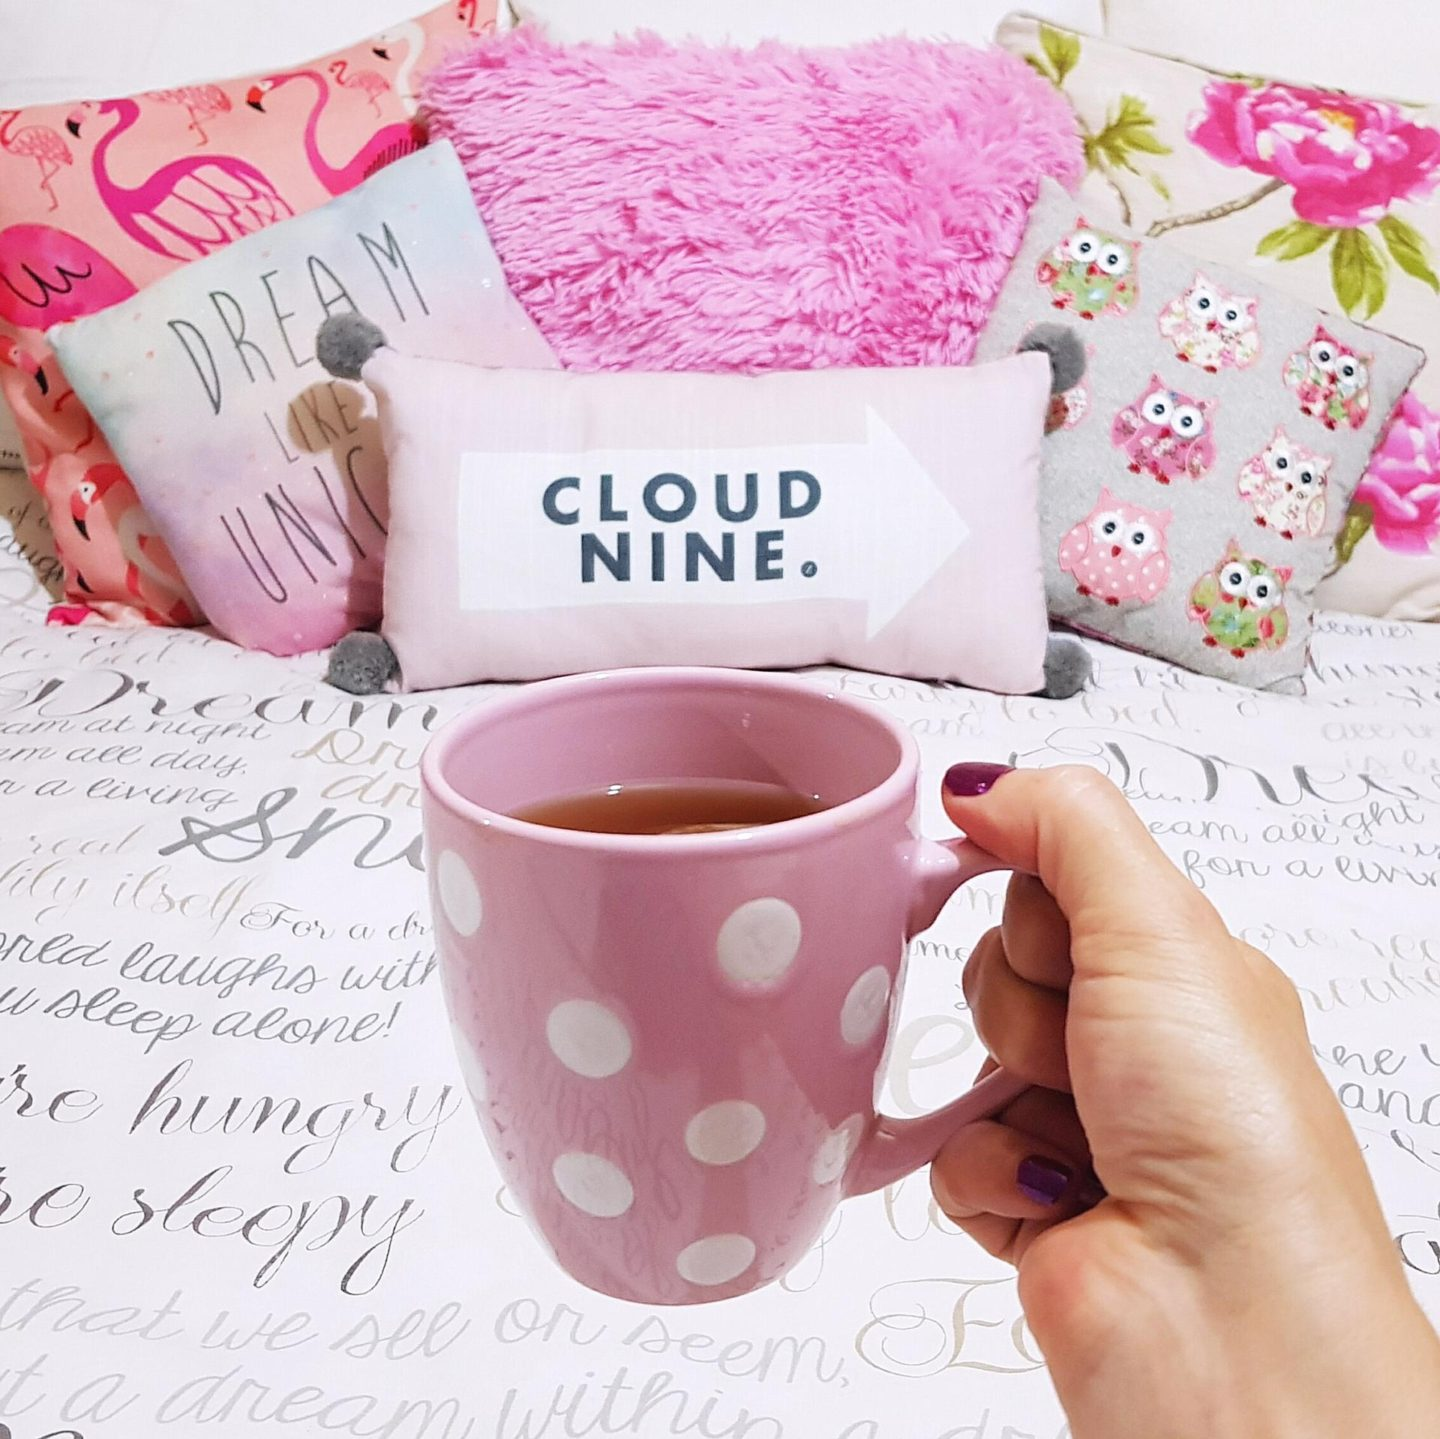 A mug of warm tea near a pile of fluffy cushions